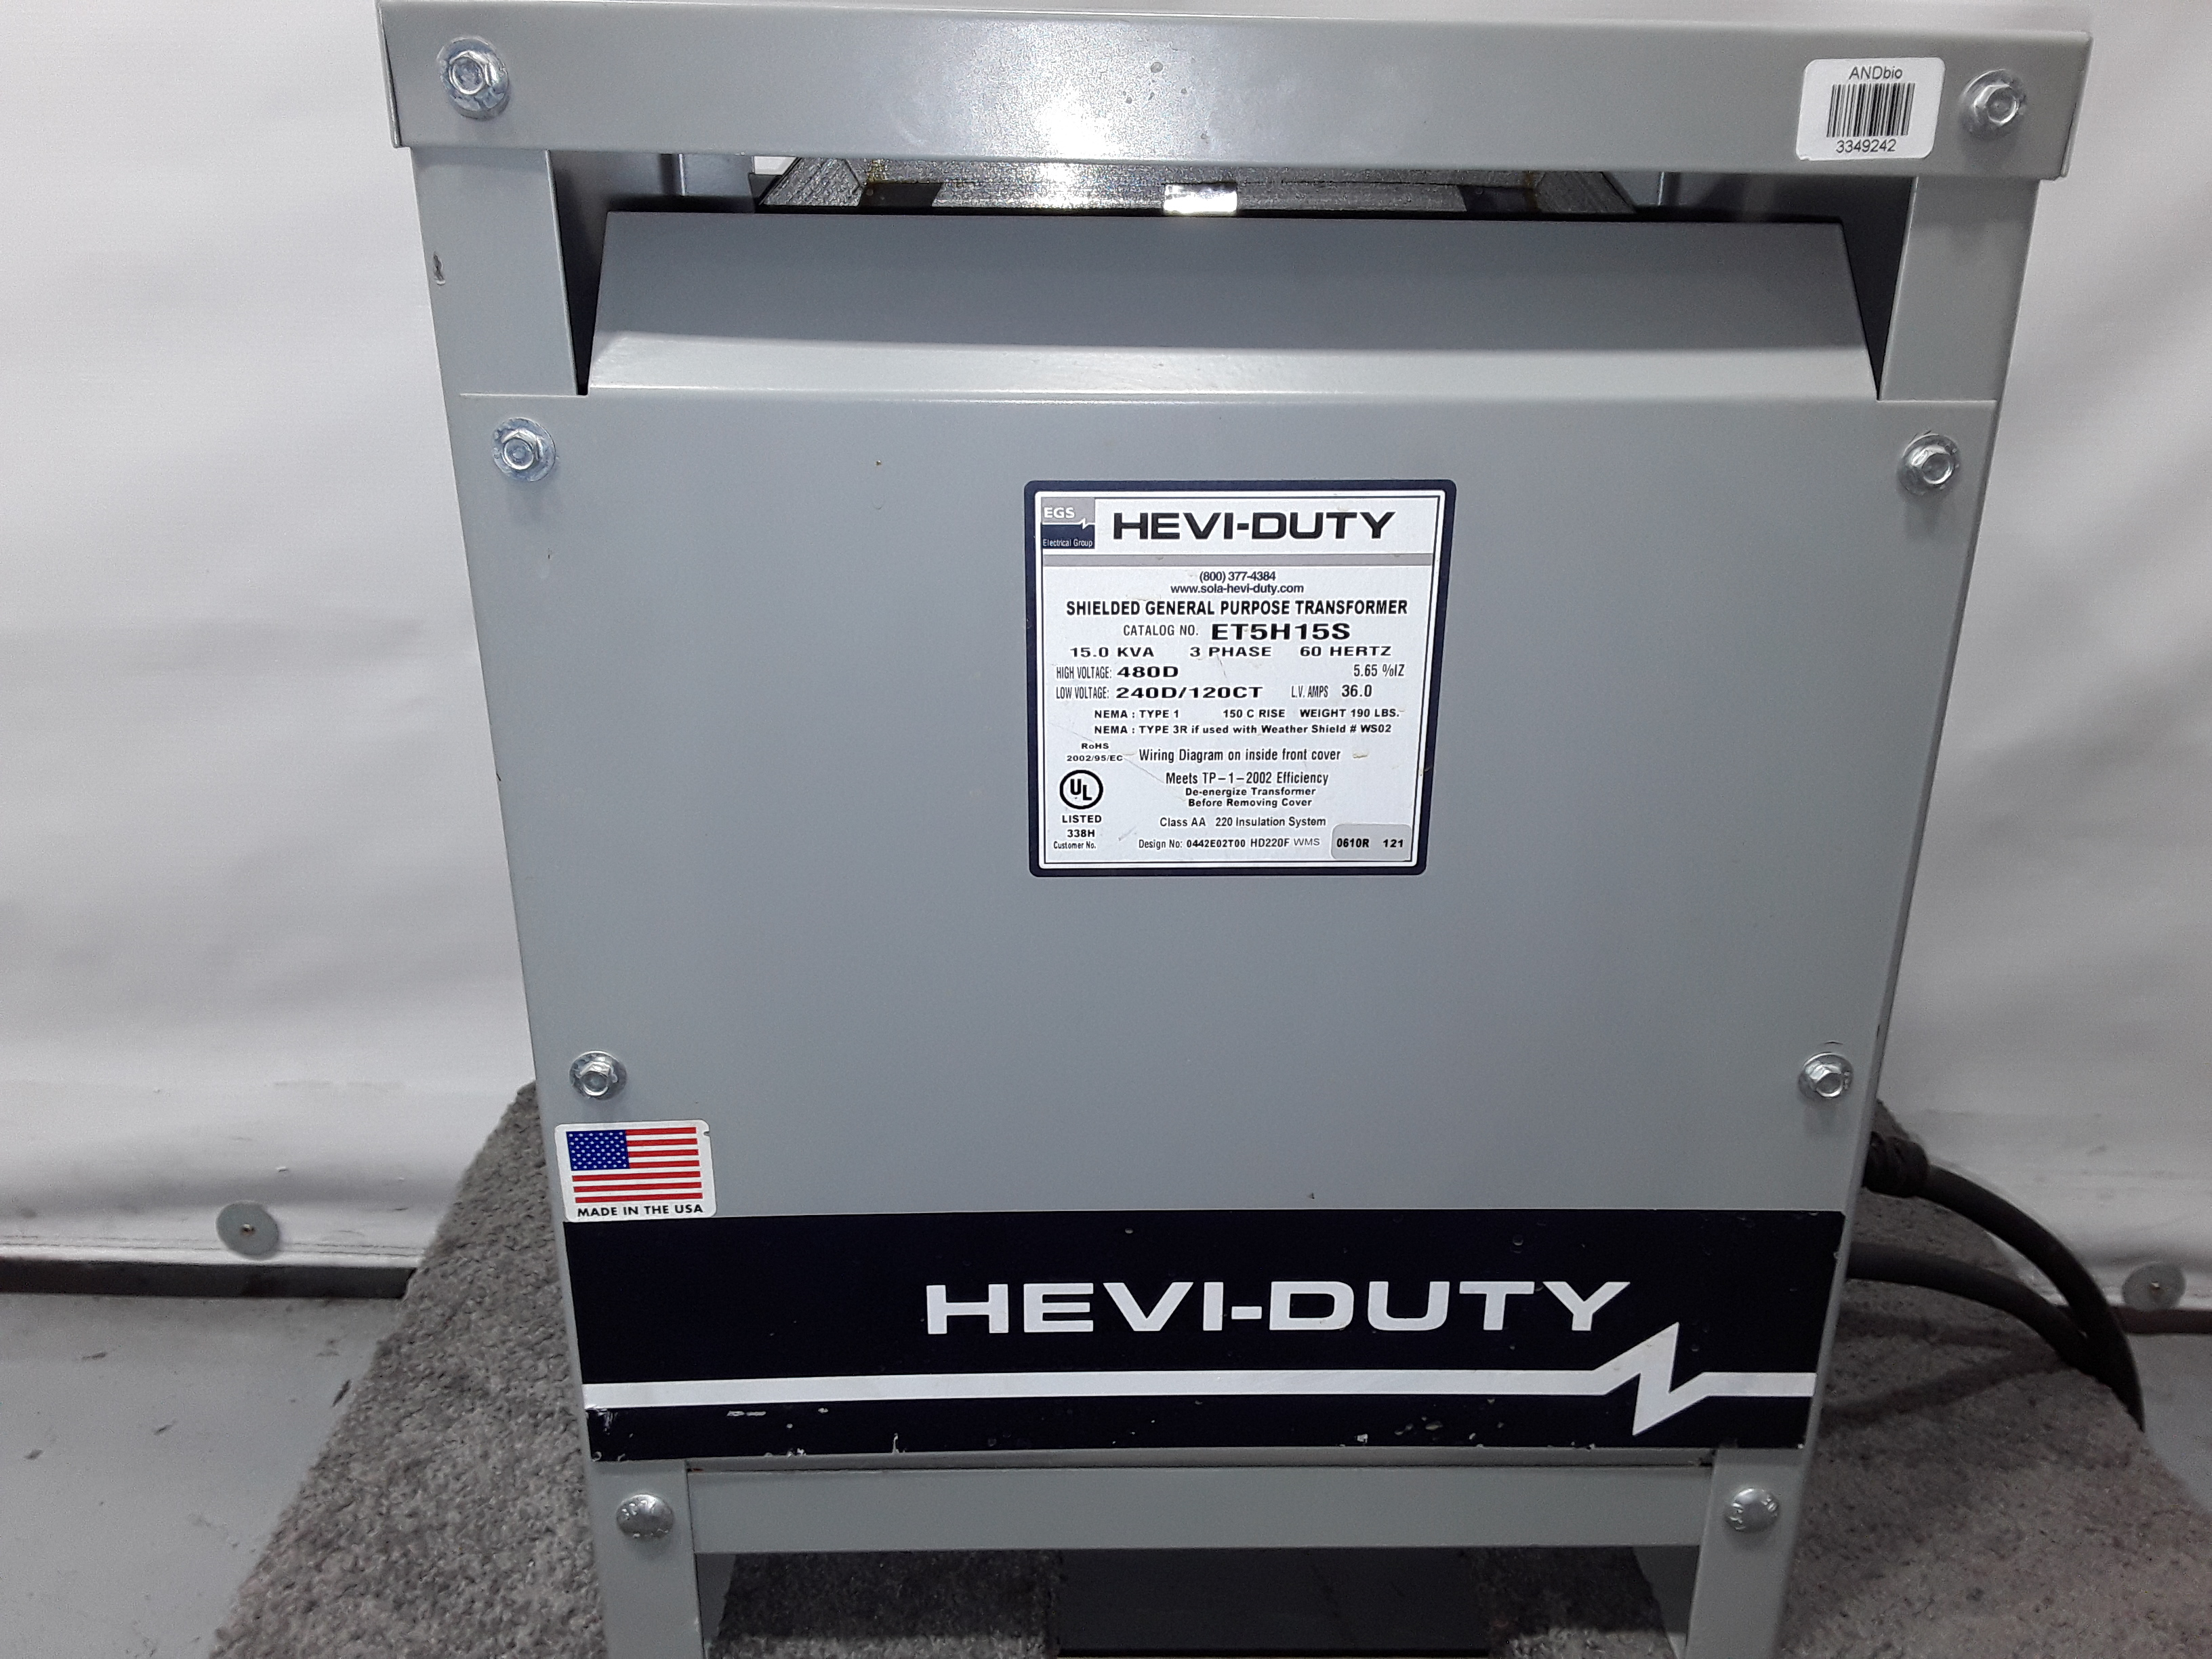 Hevi Duty Transformer Wiring Diagram from images.bid-on-equipment.com